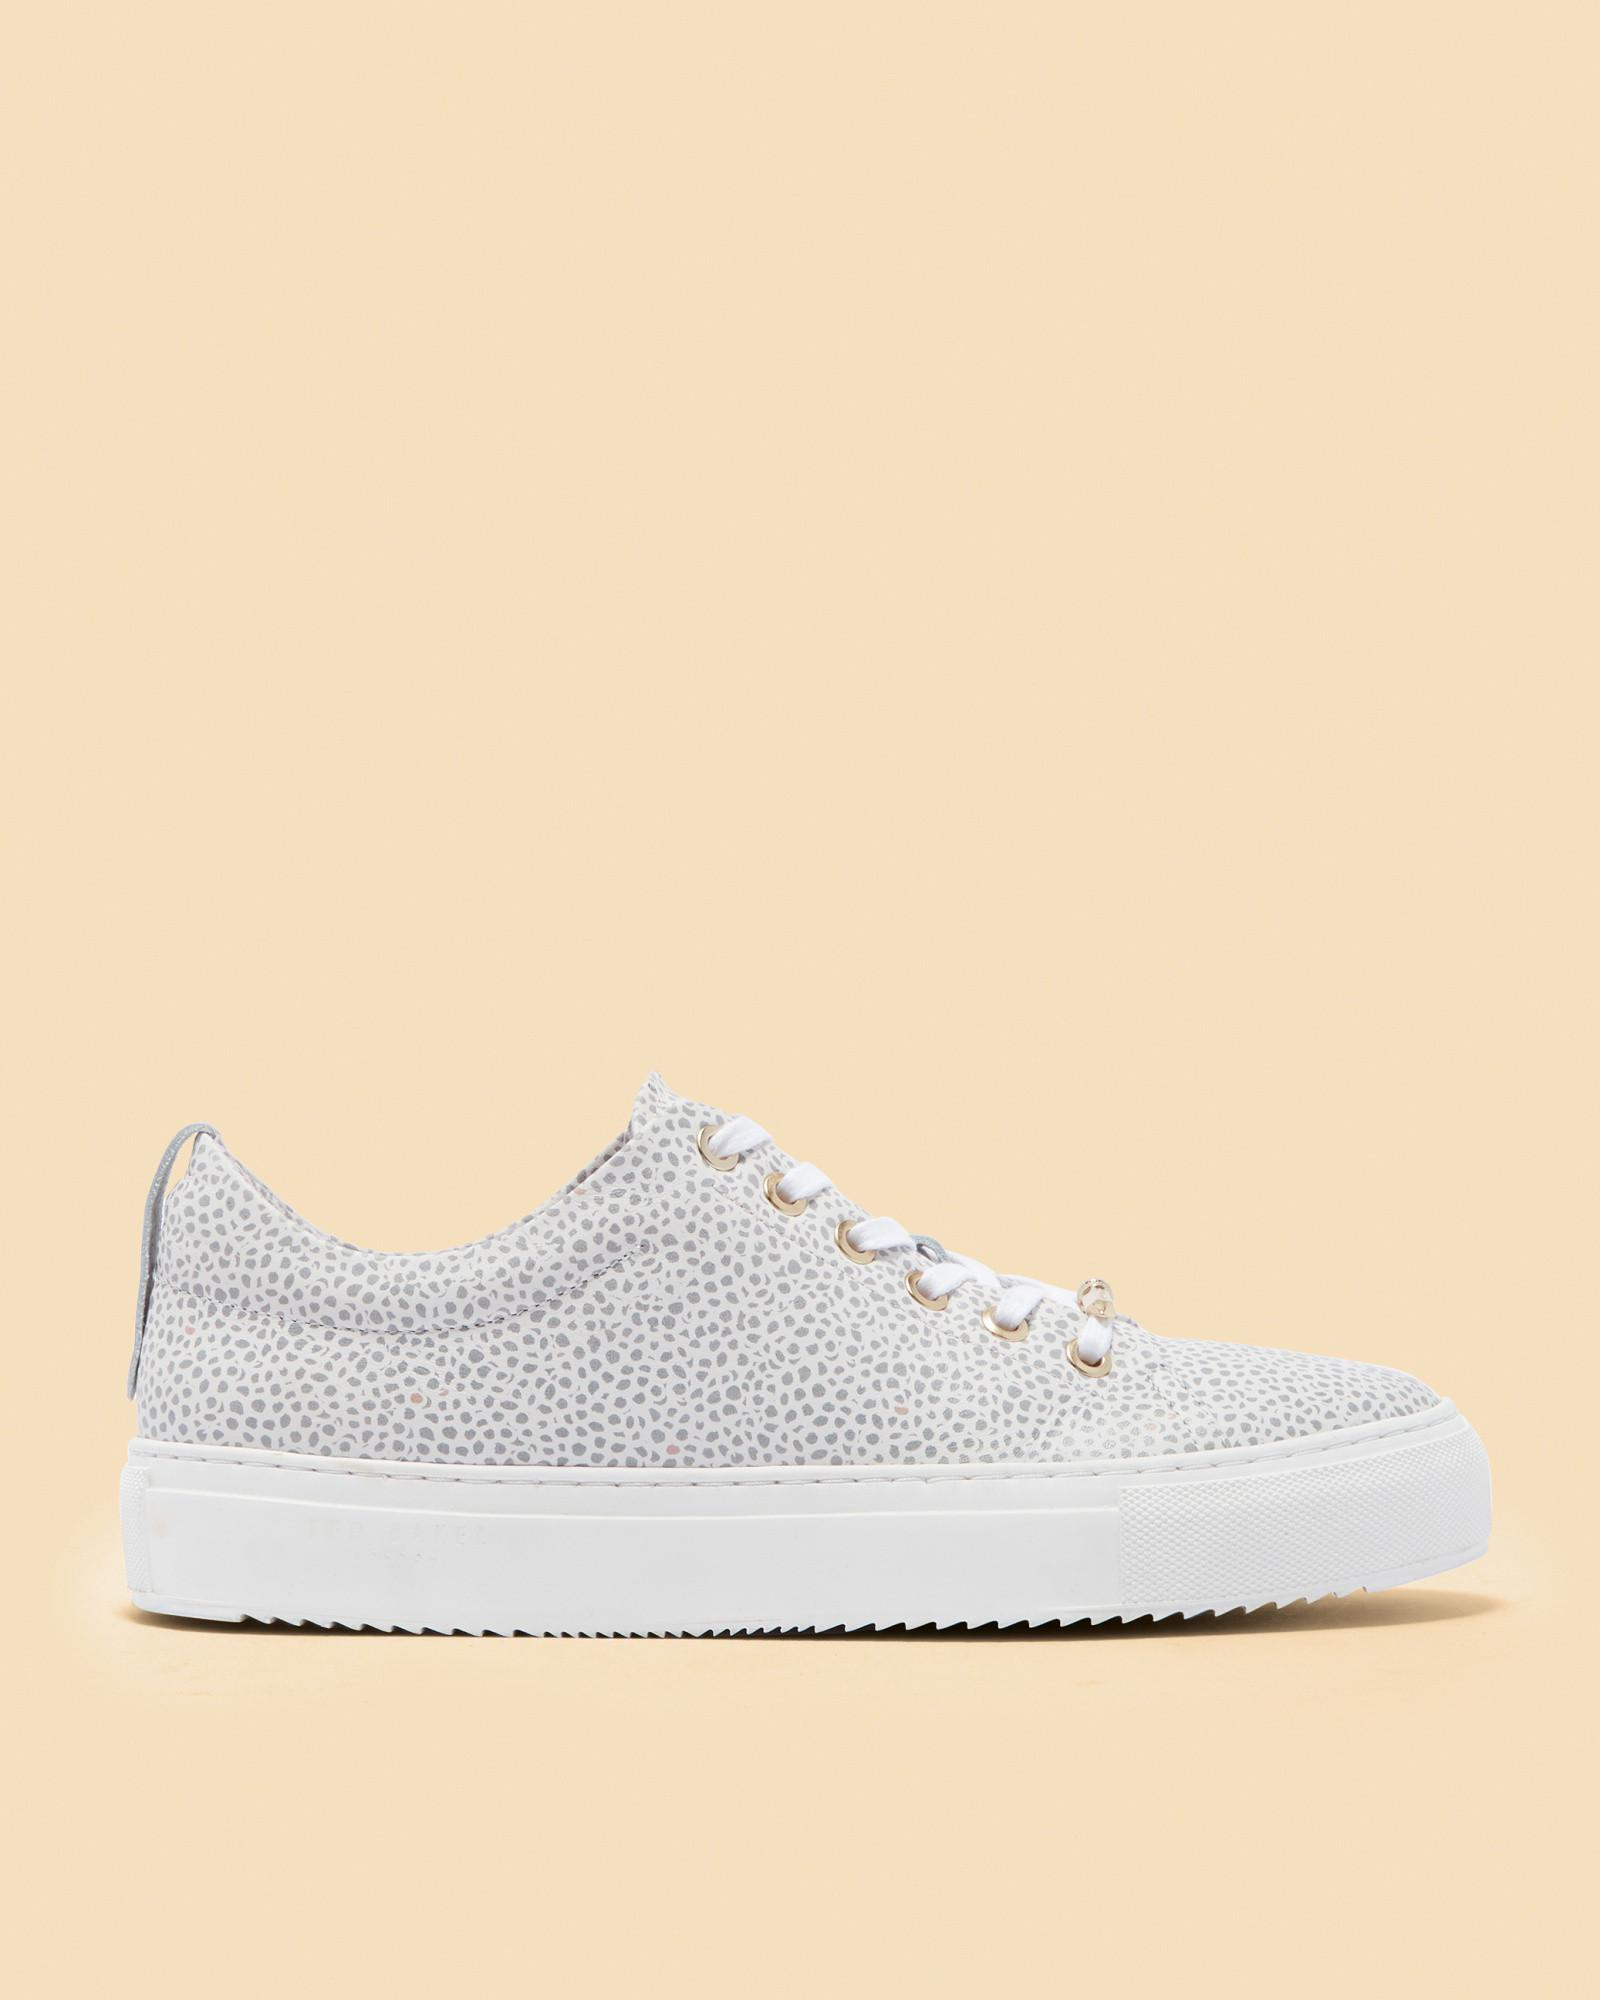 Pebble Print Leather Trainers Ted Baker Discount Shop Offer Visa Payment Sale Online Clearance Recommend Ebay Online ZqZY8L